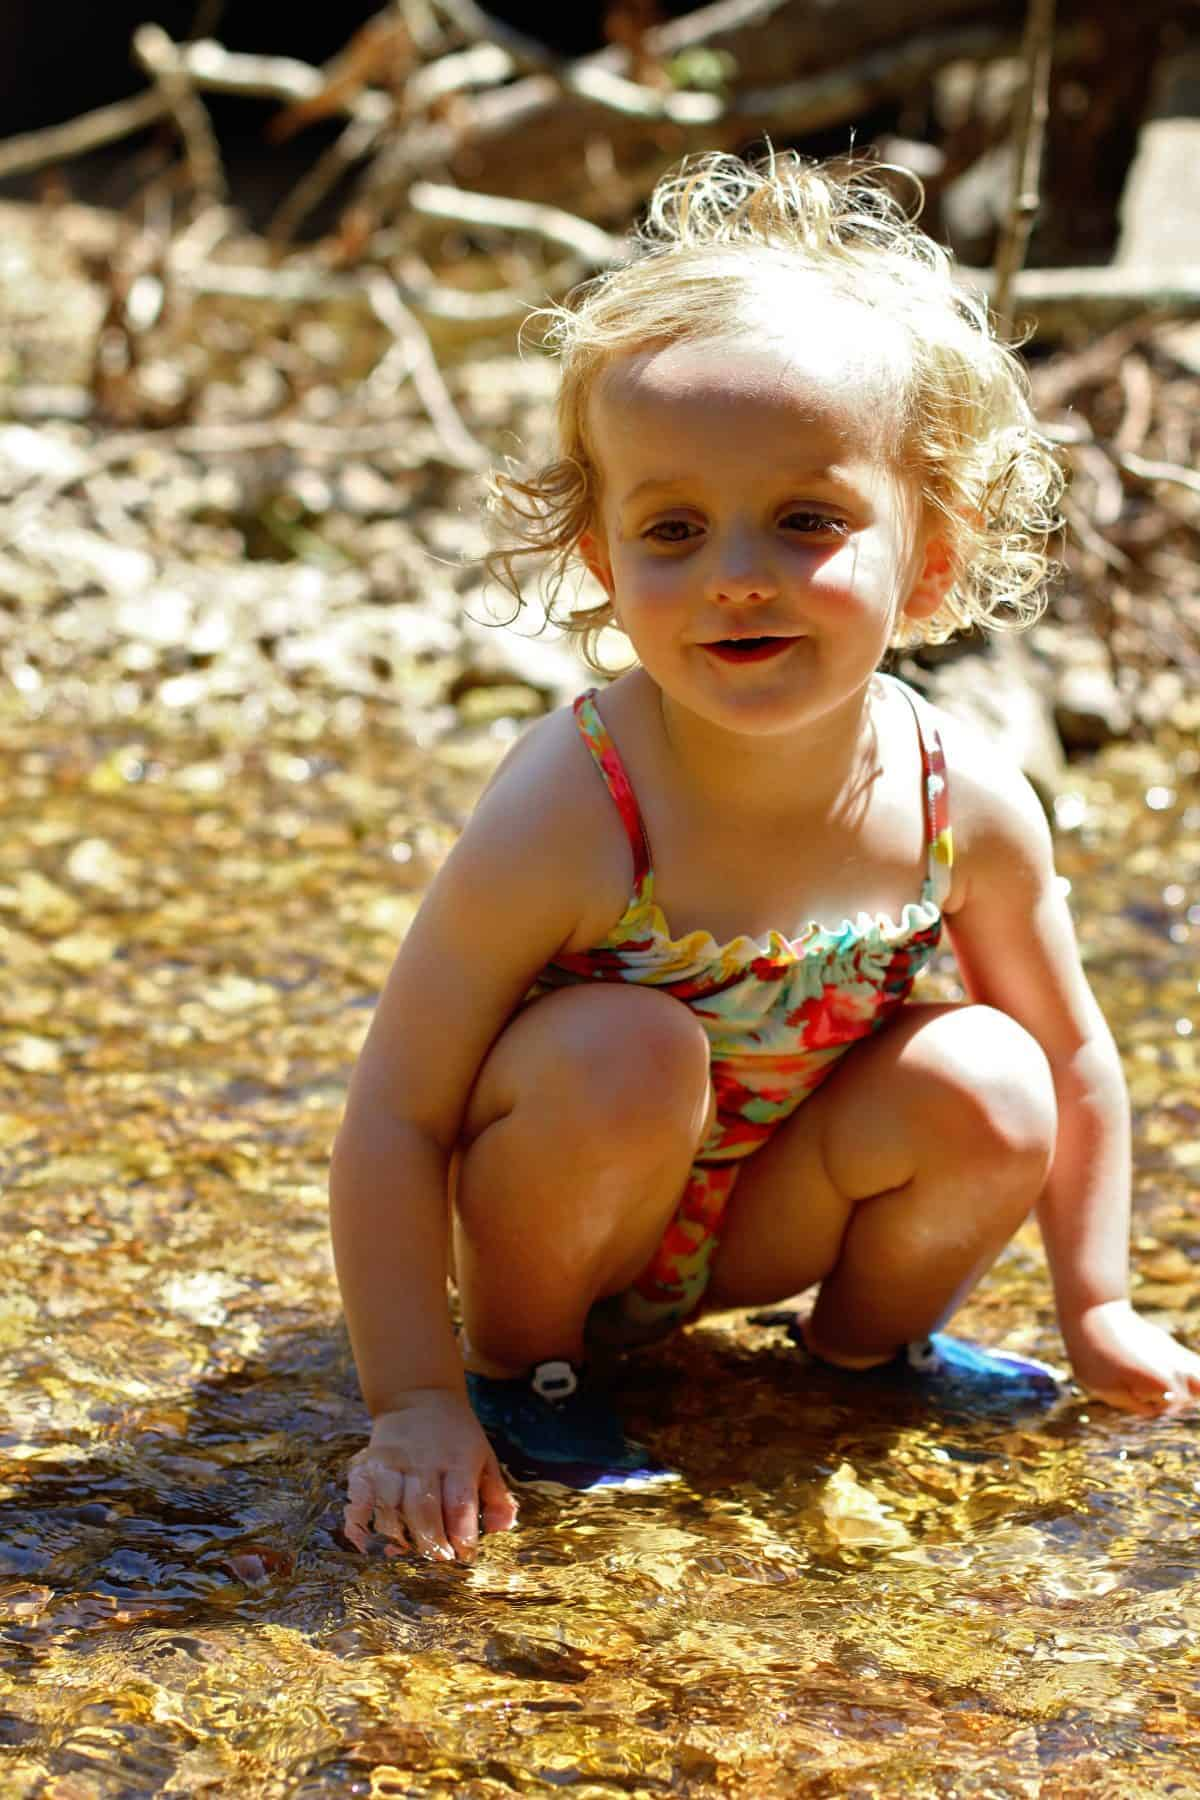 exploring creeks with toddlers